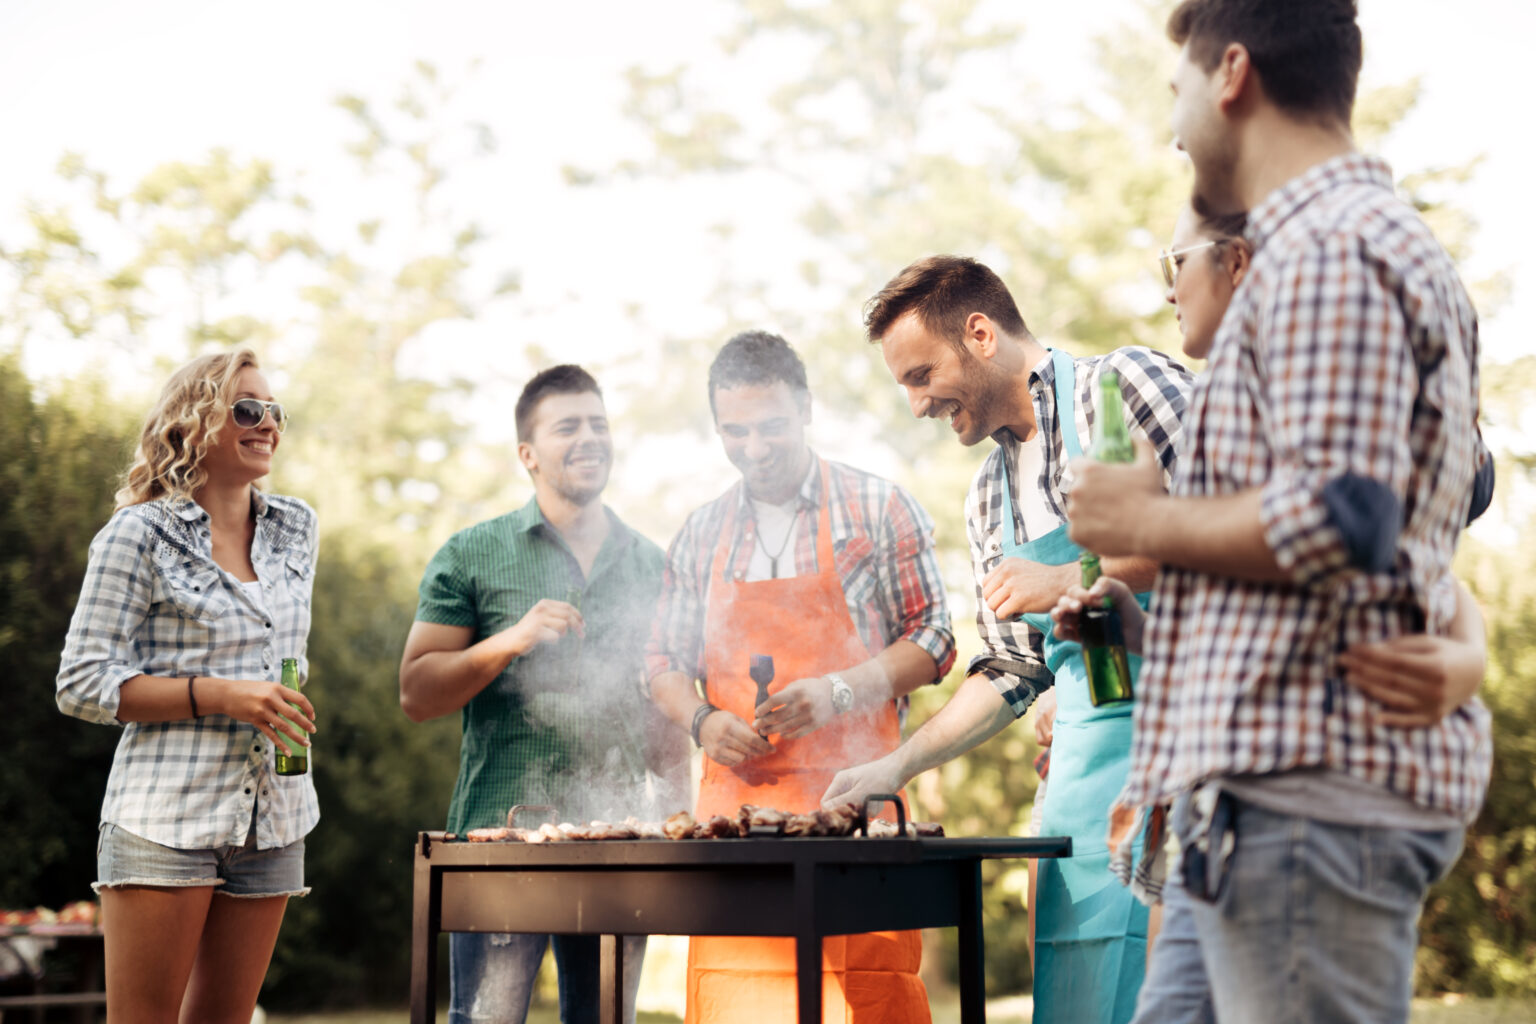 Friends camping and having a barbecue in nature